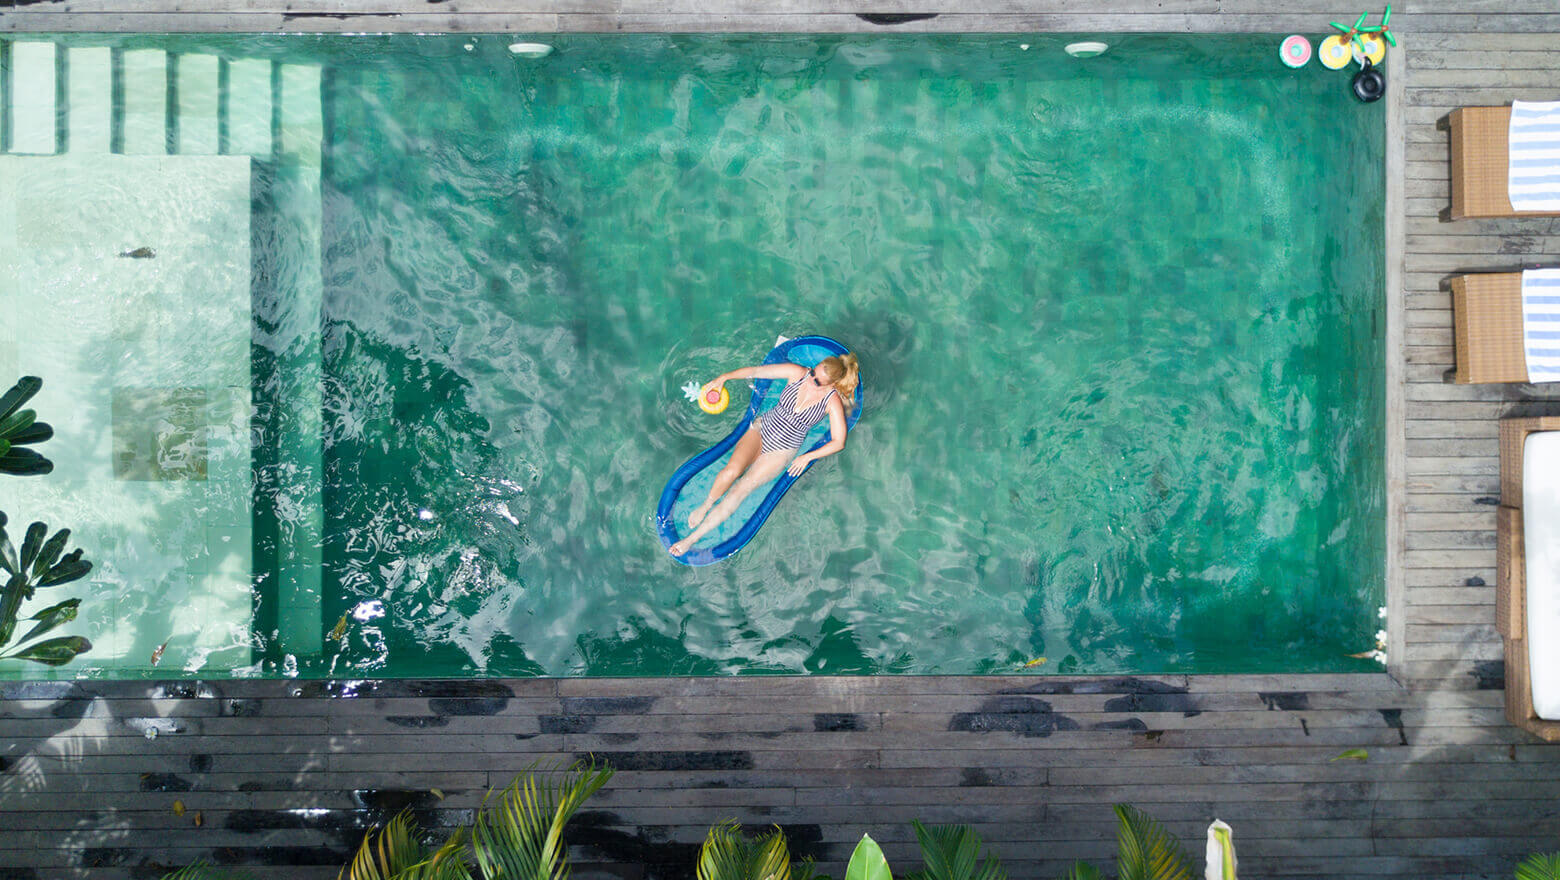 Swimming Pool Installation: Costs, Ideas, and Tips   SoFi